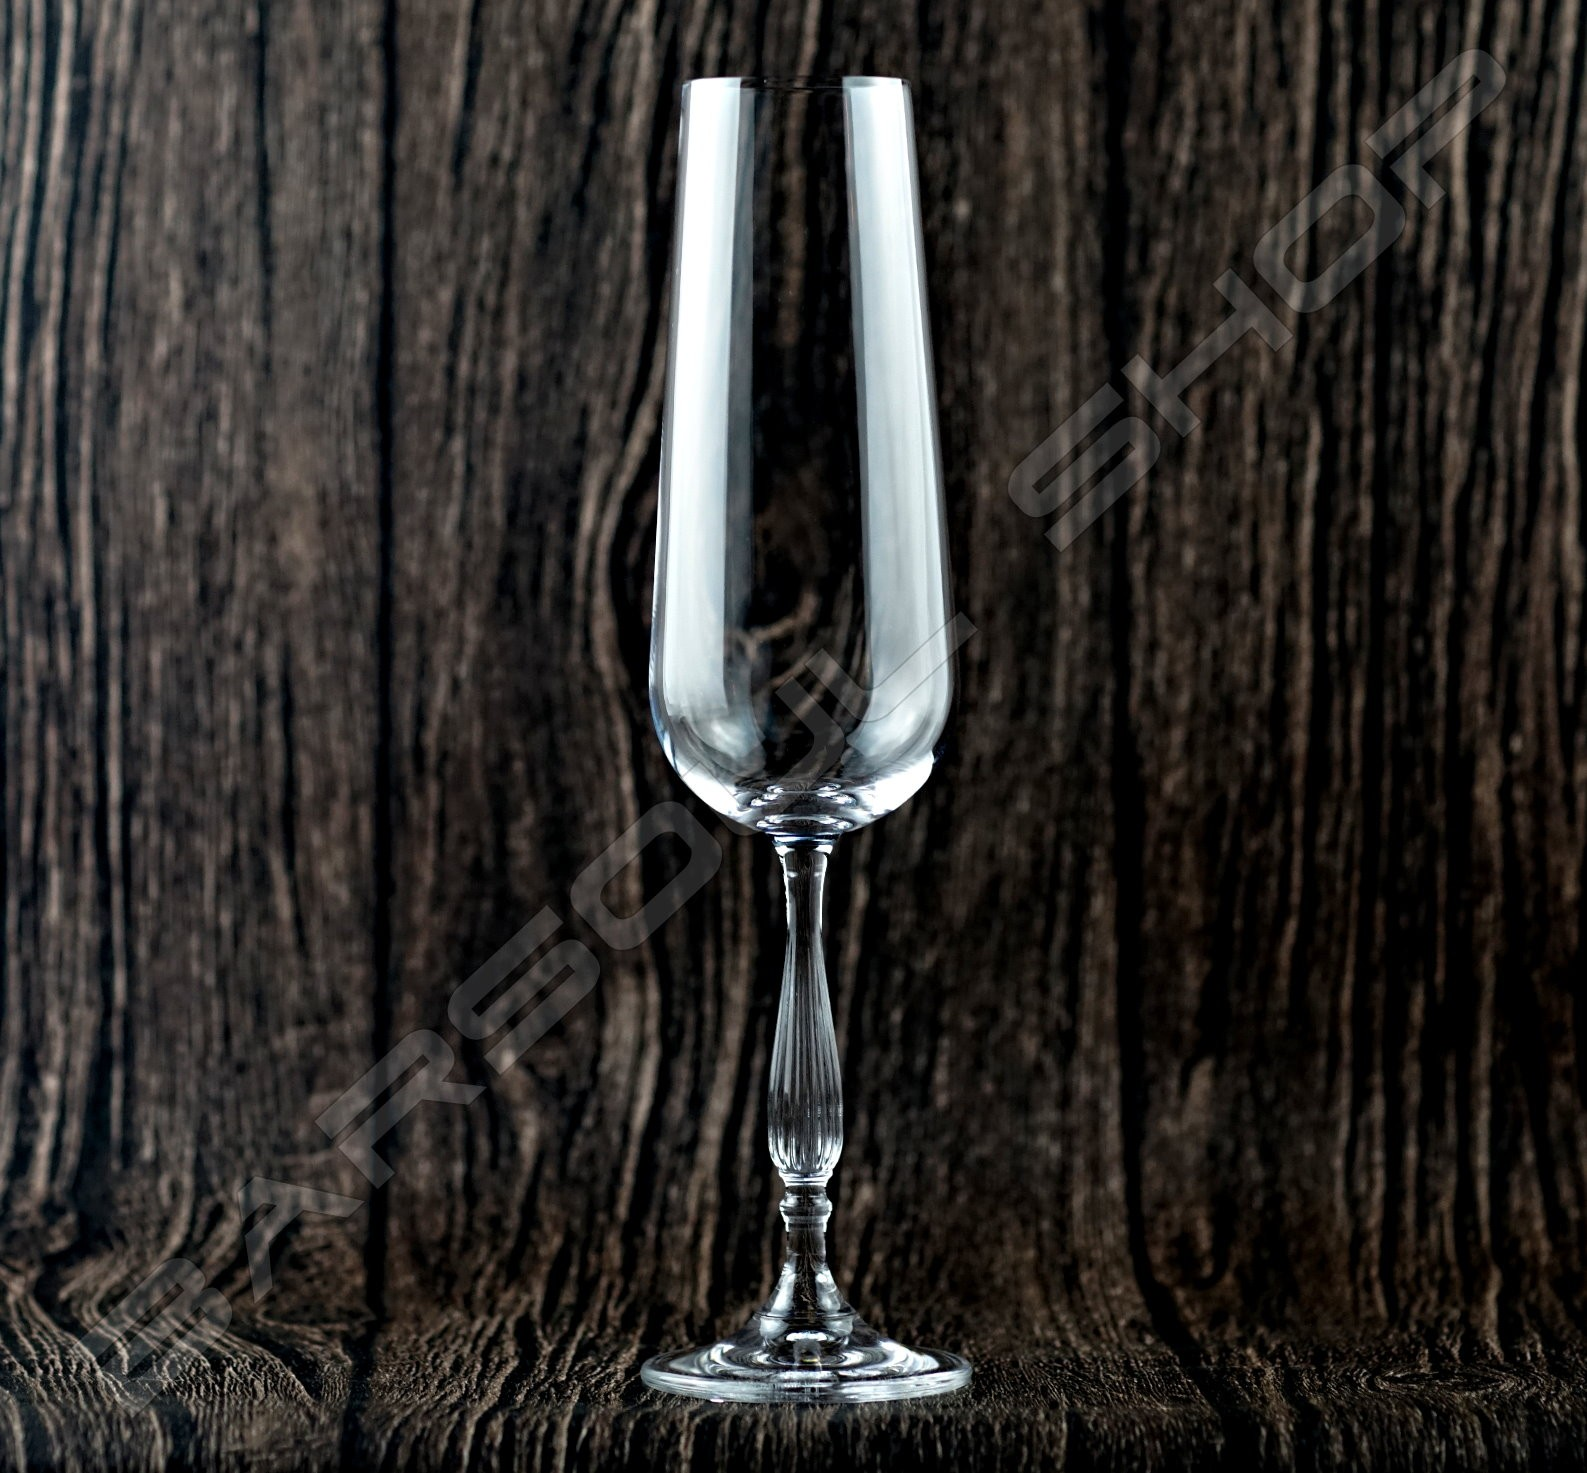 Bohemia 水晶羅馬柱香檳杯220ml champagne glass